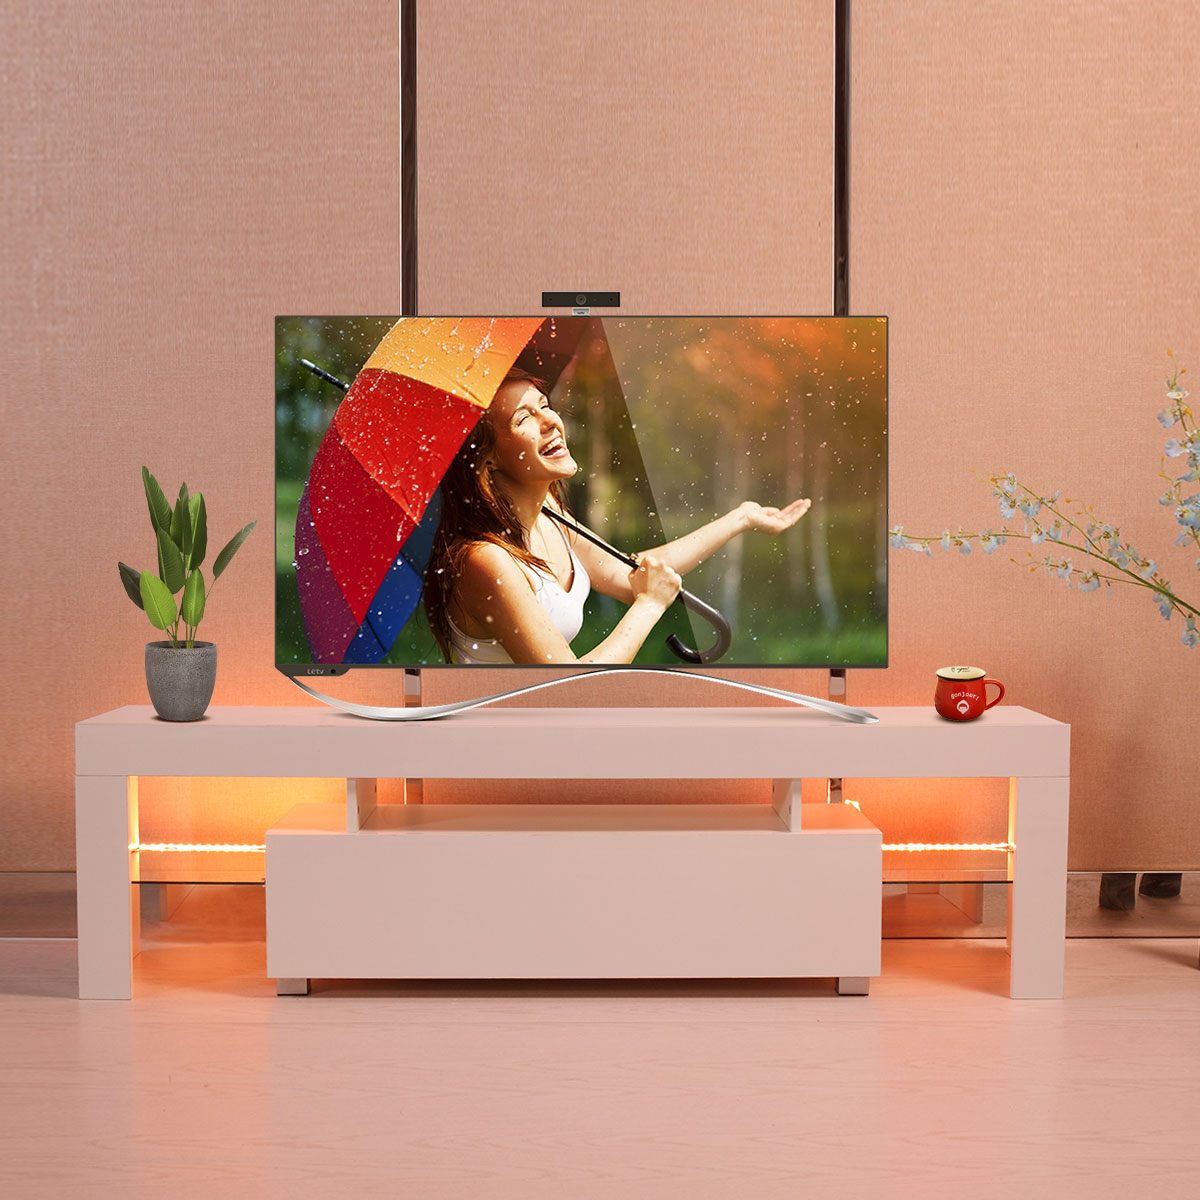 High Gloss White TV Stand Unit Cabinet Console with LED Shelves and Drawer